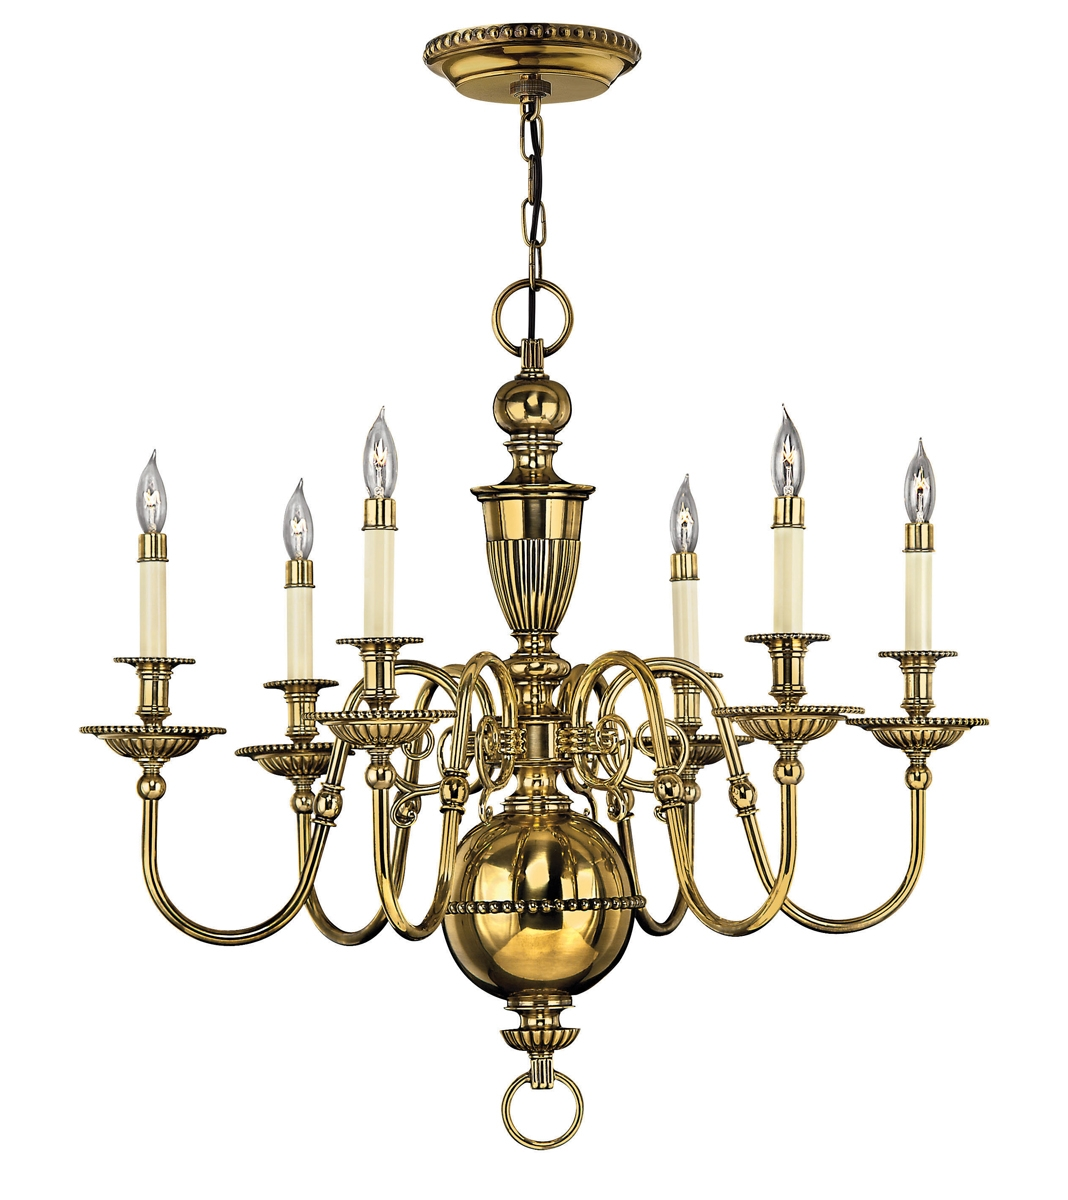 Chandelier Outstanding Williamsburg Chandeliers Mesmerizing Intended For Traditional Brass Chandeliers (#6 of 12)